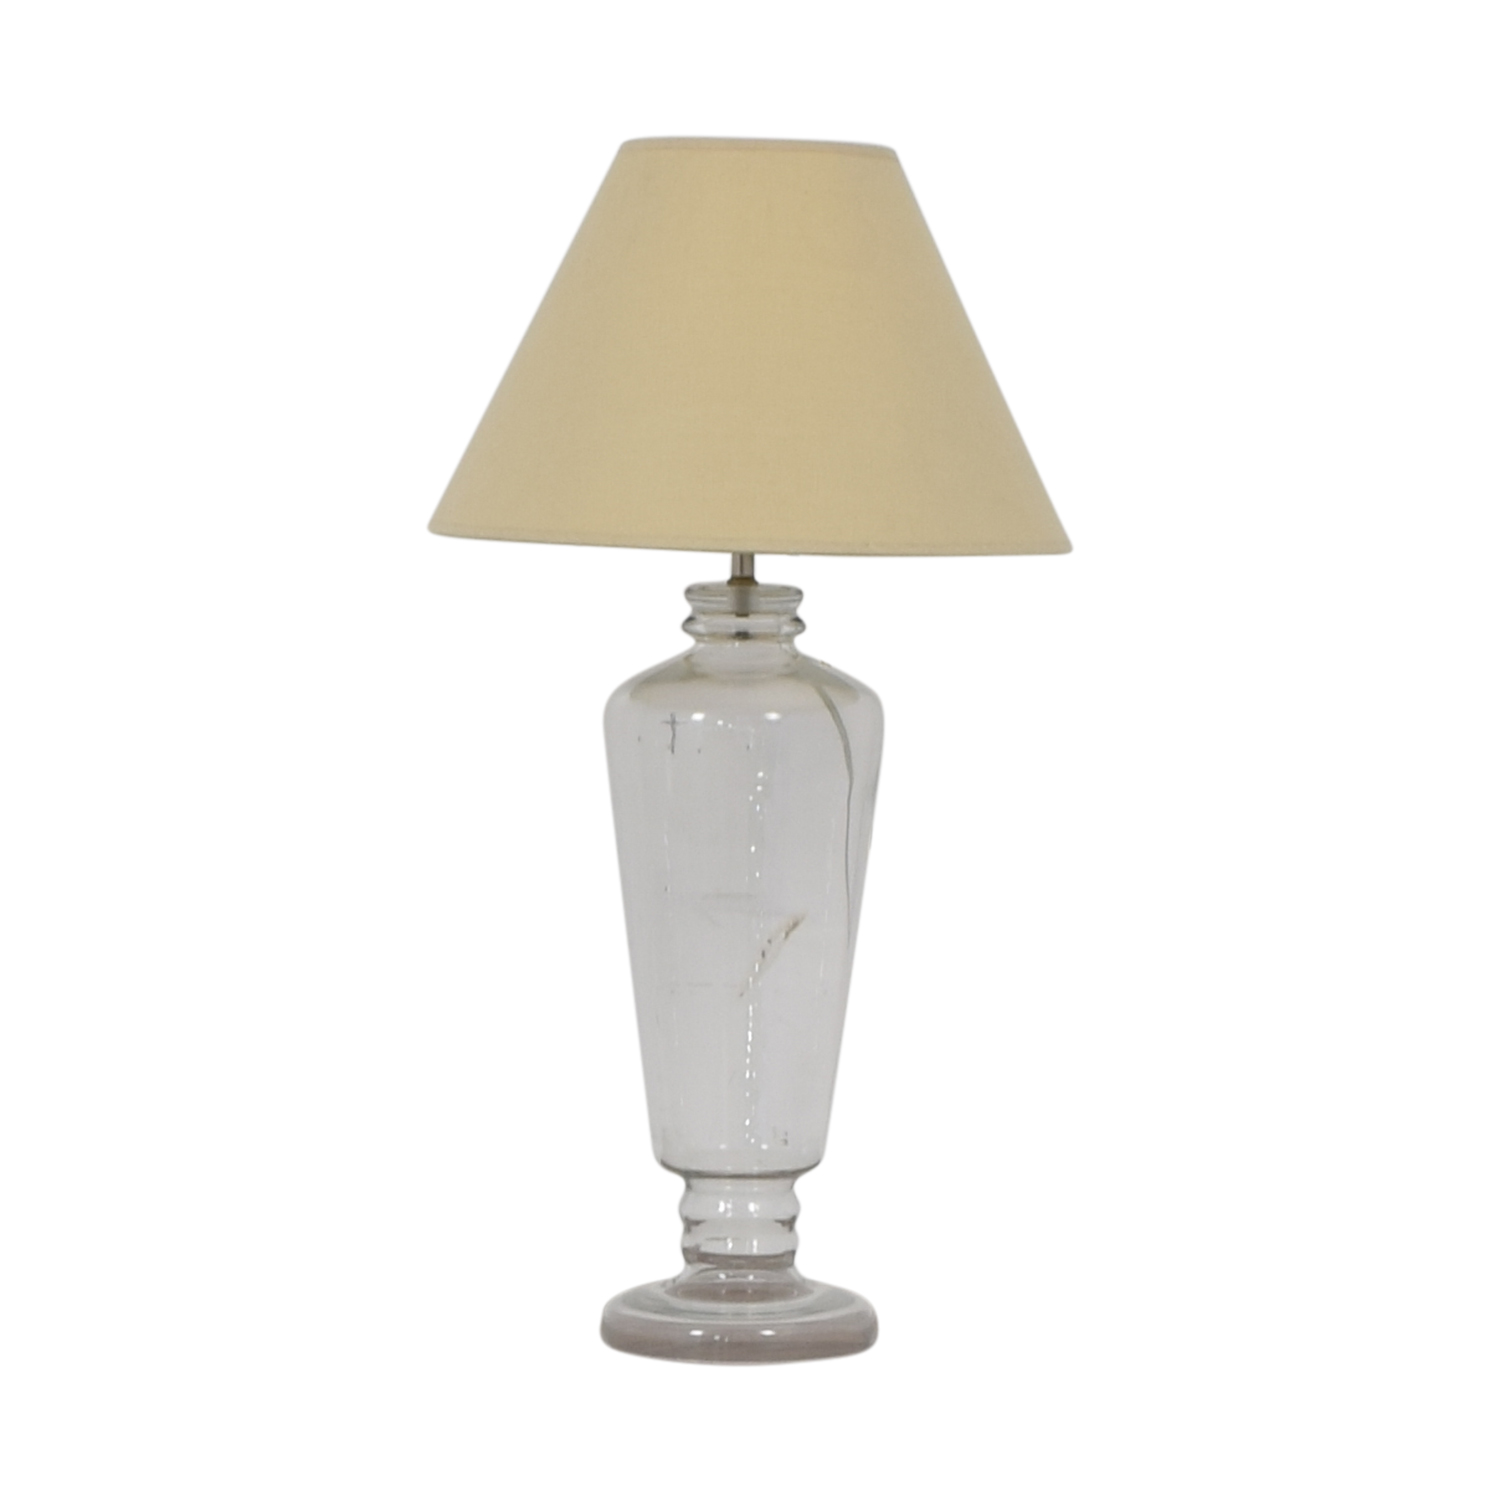 Pottery Barn Pottery Barn Lamp for sale